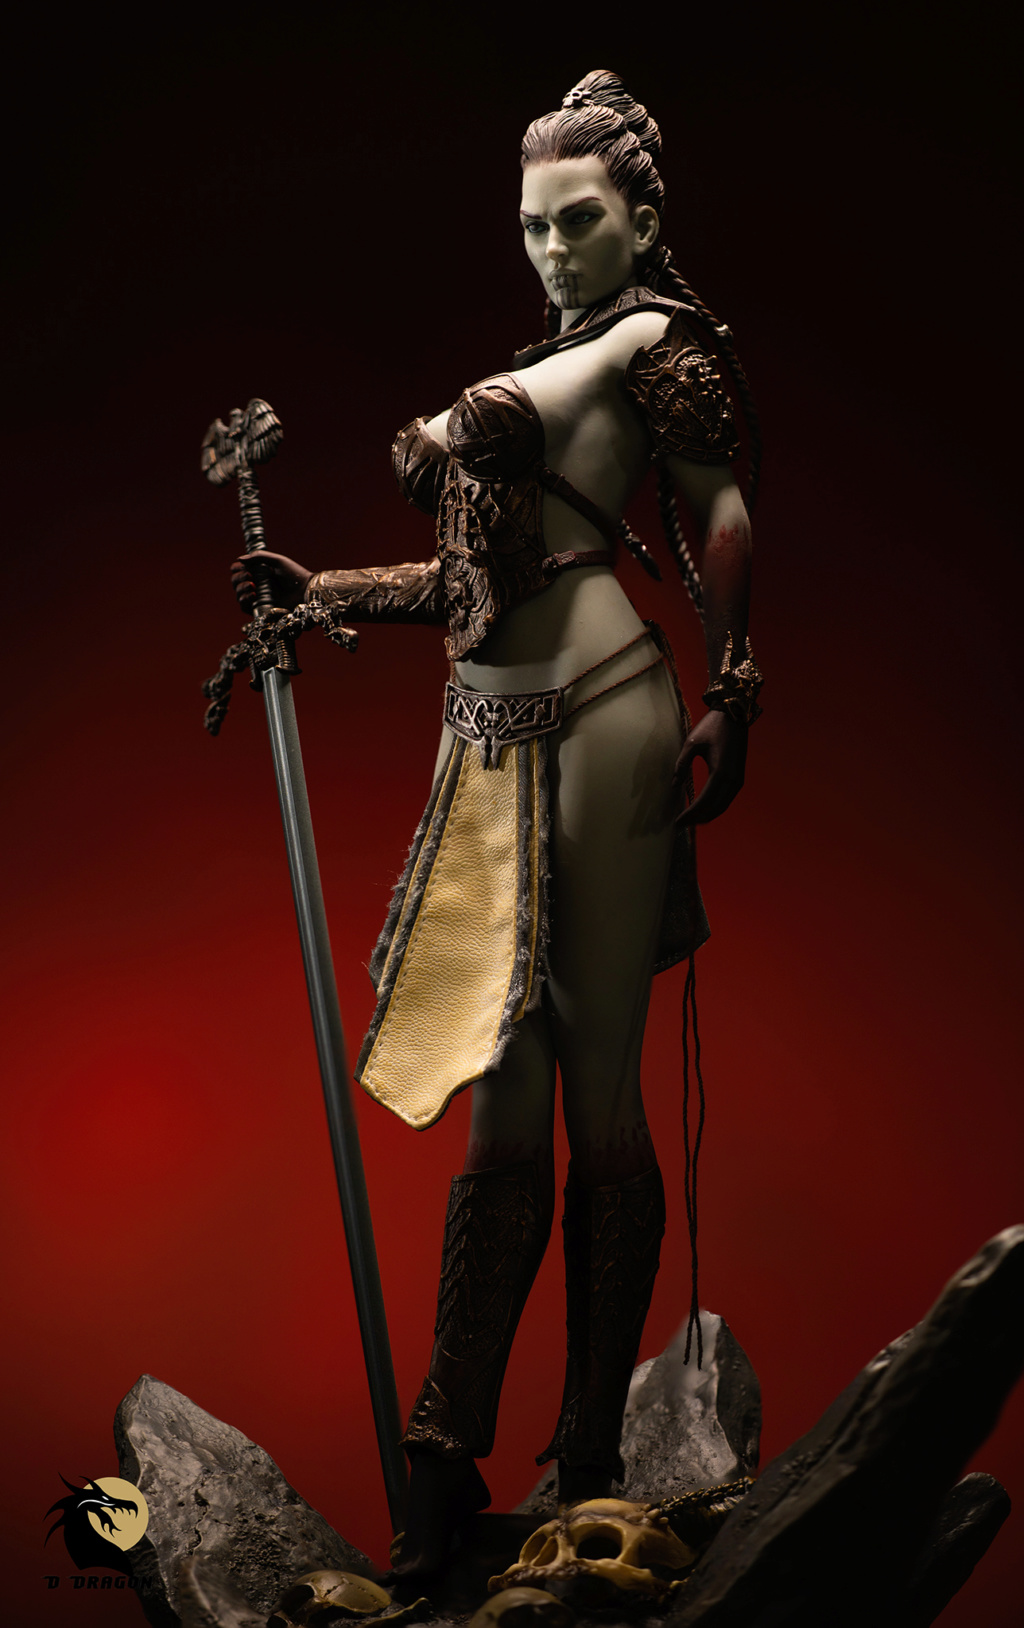 tbleague - NEW PRODUCT: TBLeague & Sideshow: 1/6 Court of the Dead - Valkyrie Cole / Kier movable doll (PL2019-141) Kier_510